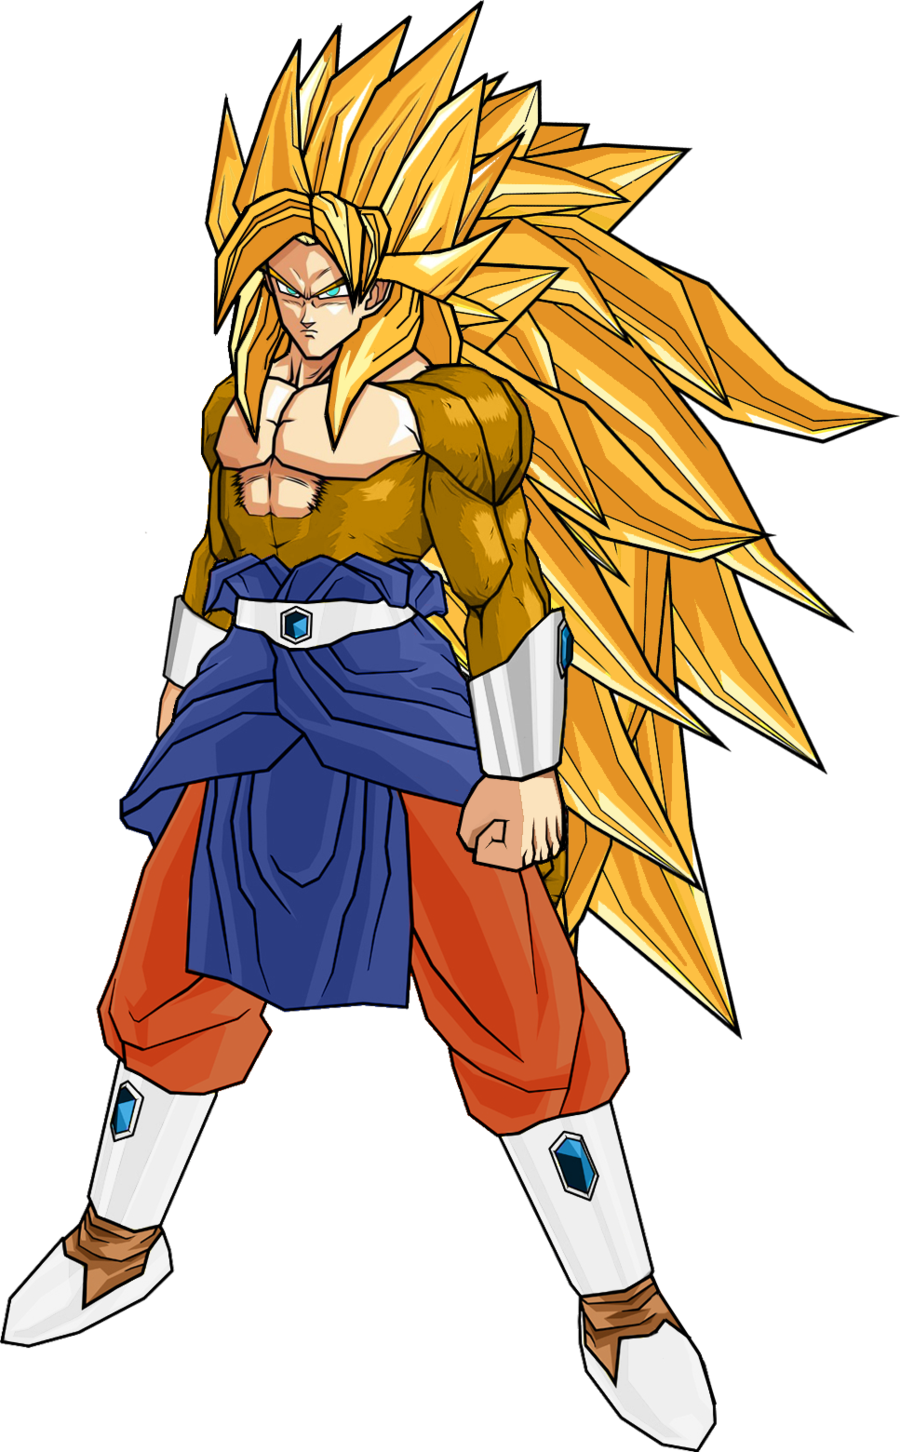 Supreme super saiyan ultra dragon ball wiki fandom powered by wikia - Super sayen 10 ...